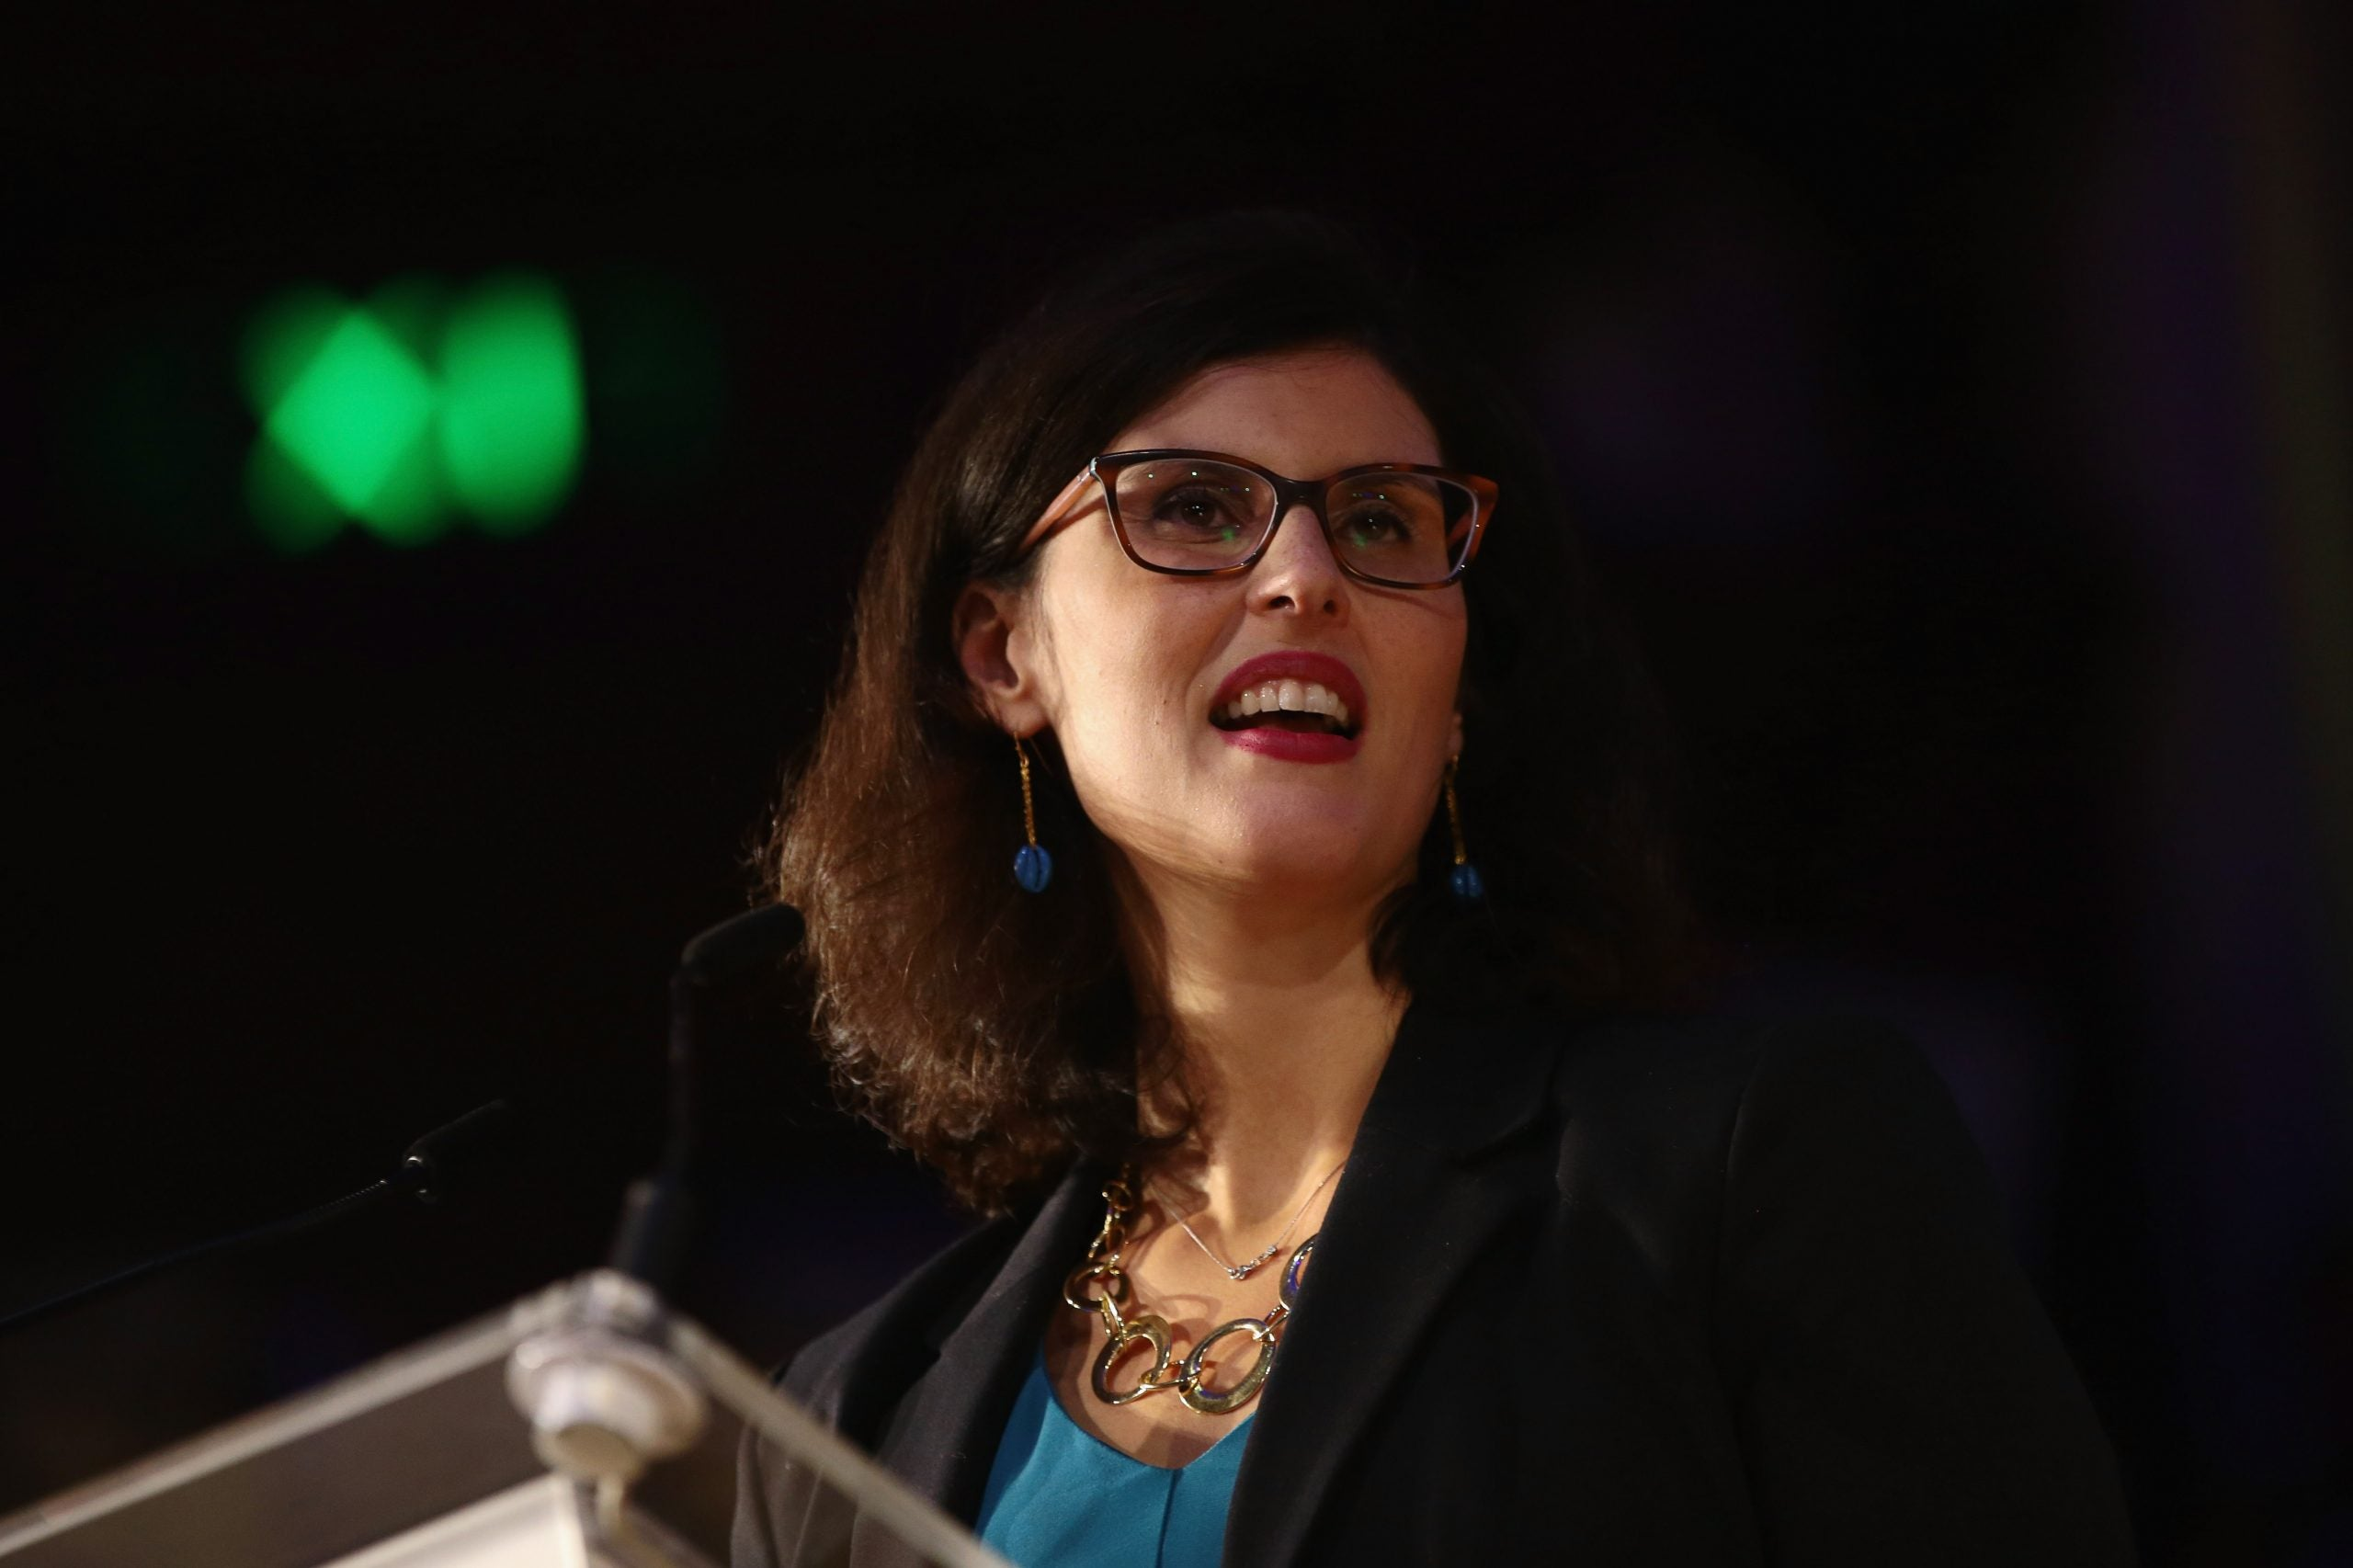 Layla Moran: The local elections show that, if you want to stop Brexit, you should vote Lib Dem